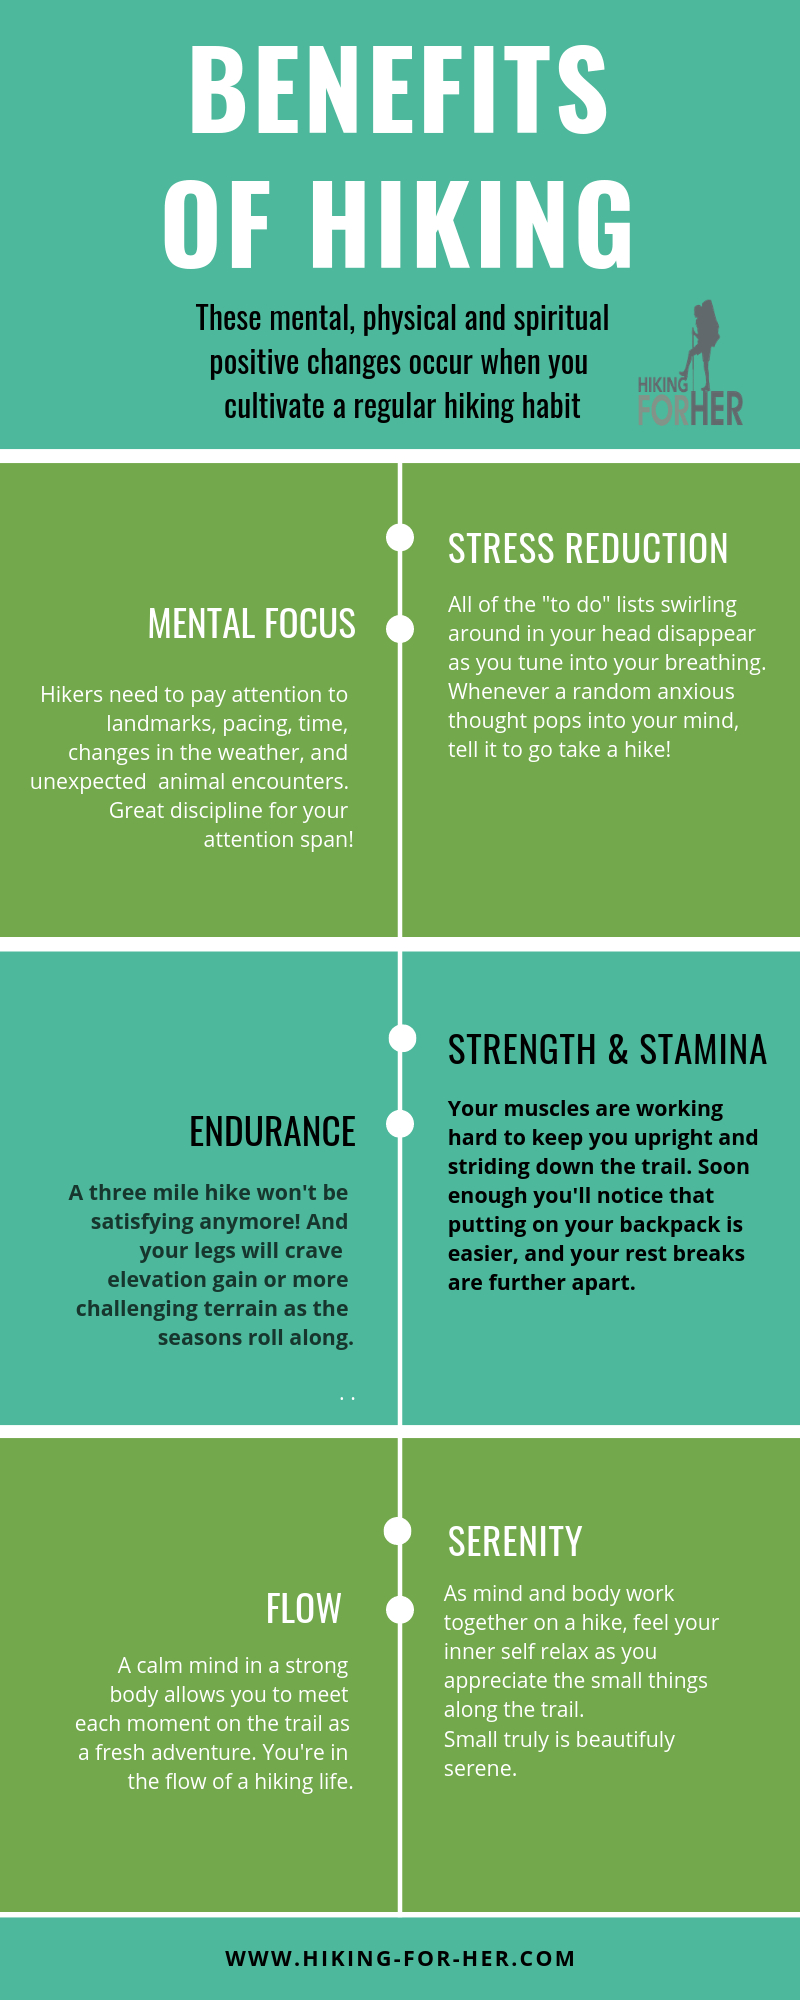 Benefits of hiking infographic from Hiking For Her #hikinginfographic #benefitsofhiking #whyhike #hiking #backpacking #whyhike